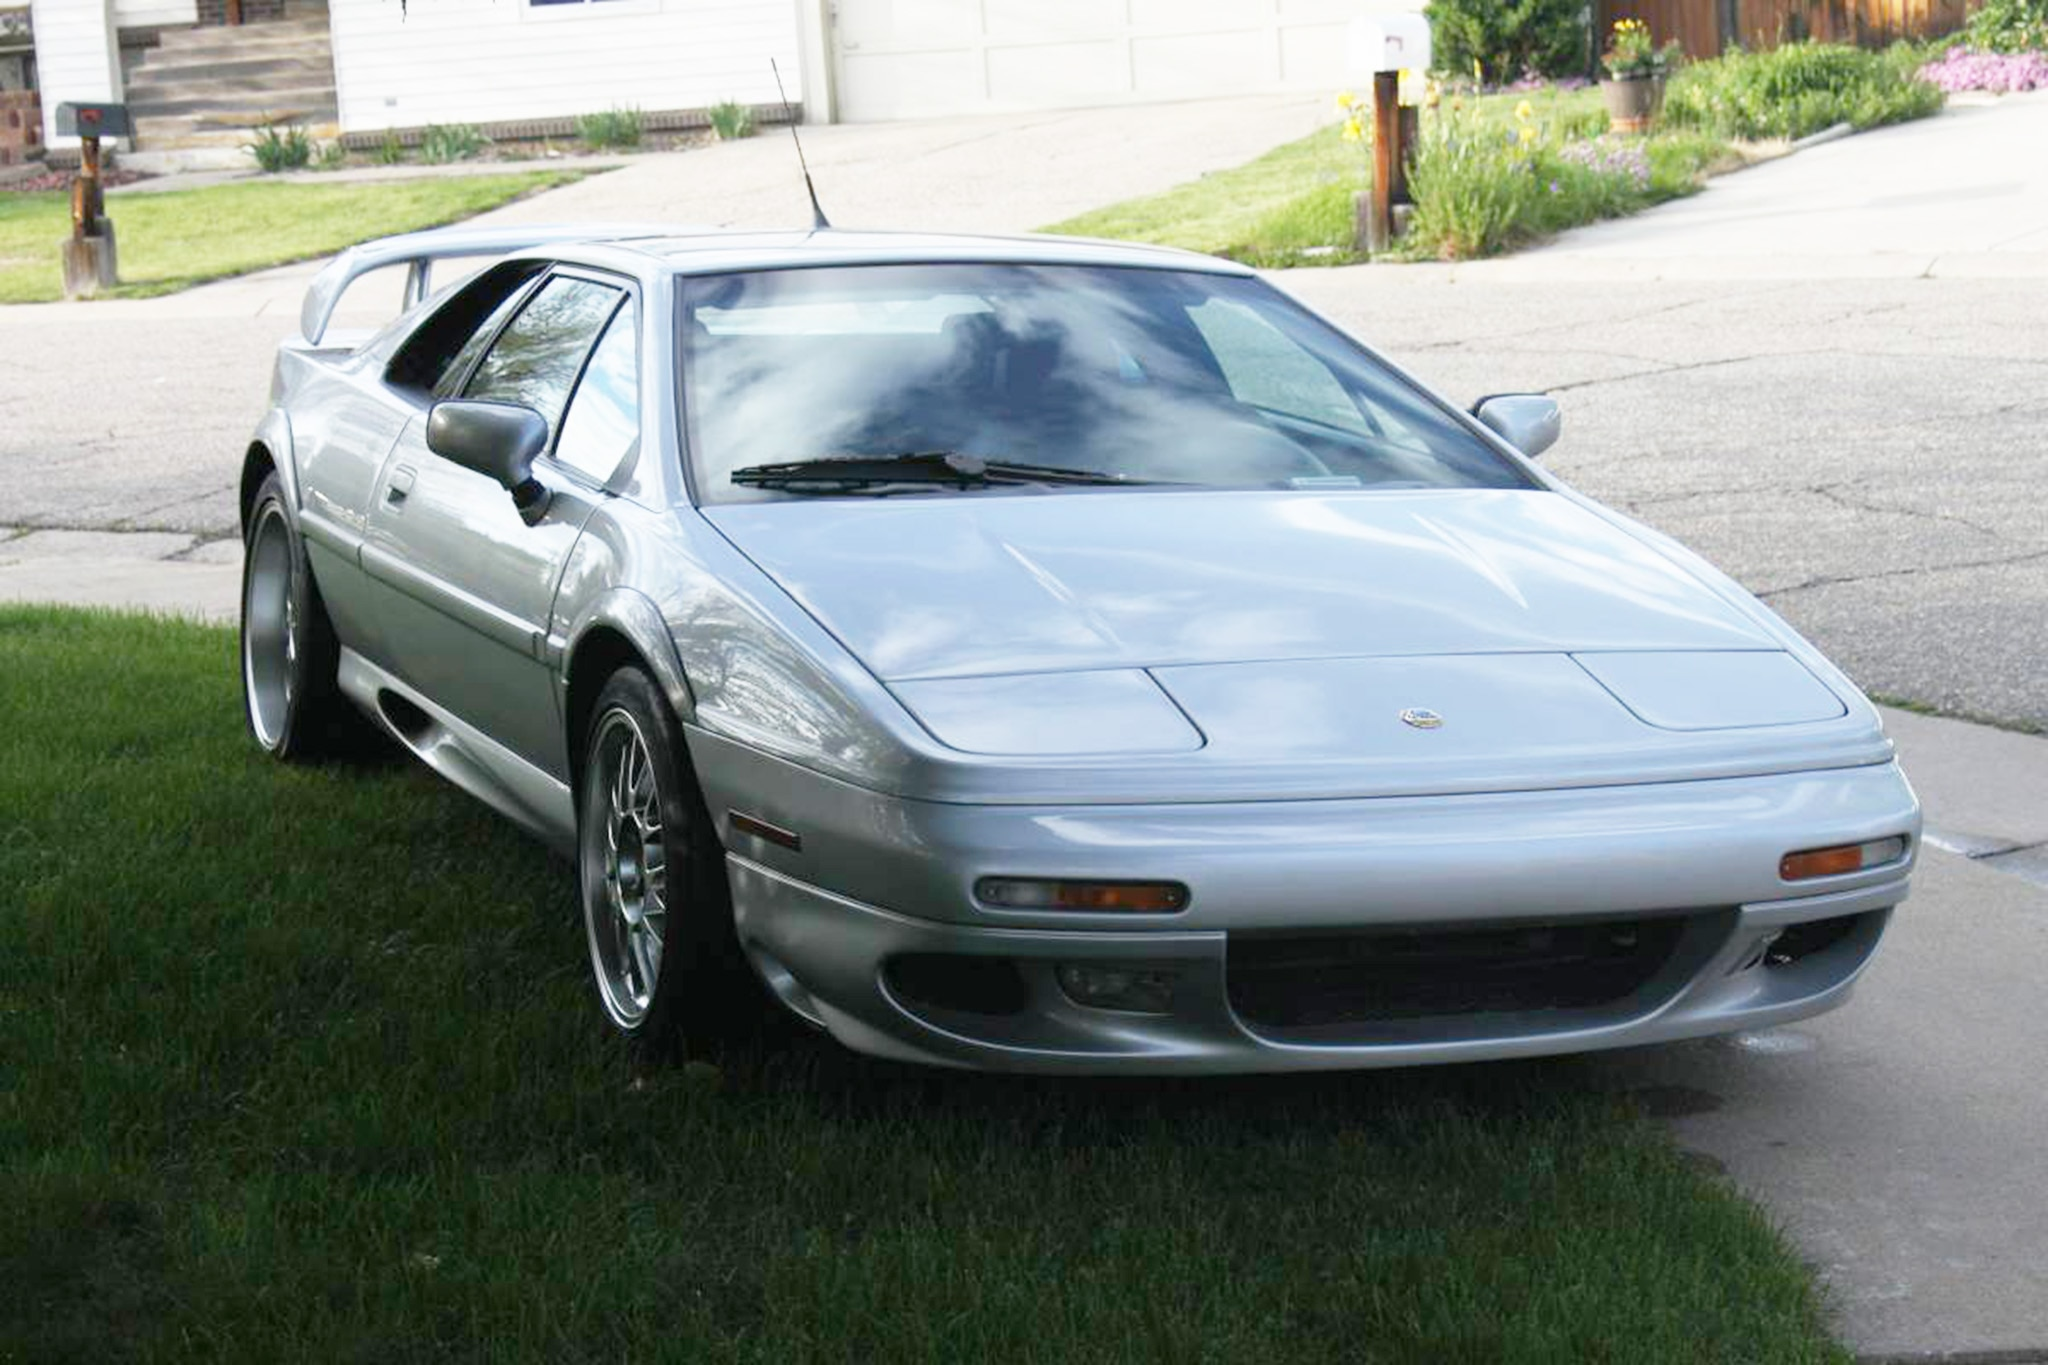 http://st.automobilemag.com/uploads/sites/11/2017/08/2002-Lotus-Esprit-V8-Just-Listed-Front-Three-Quarters.jpg